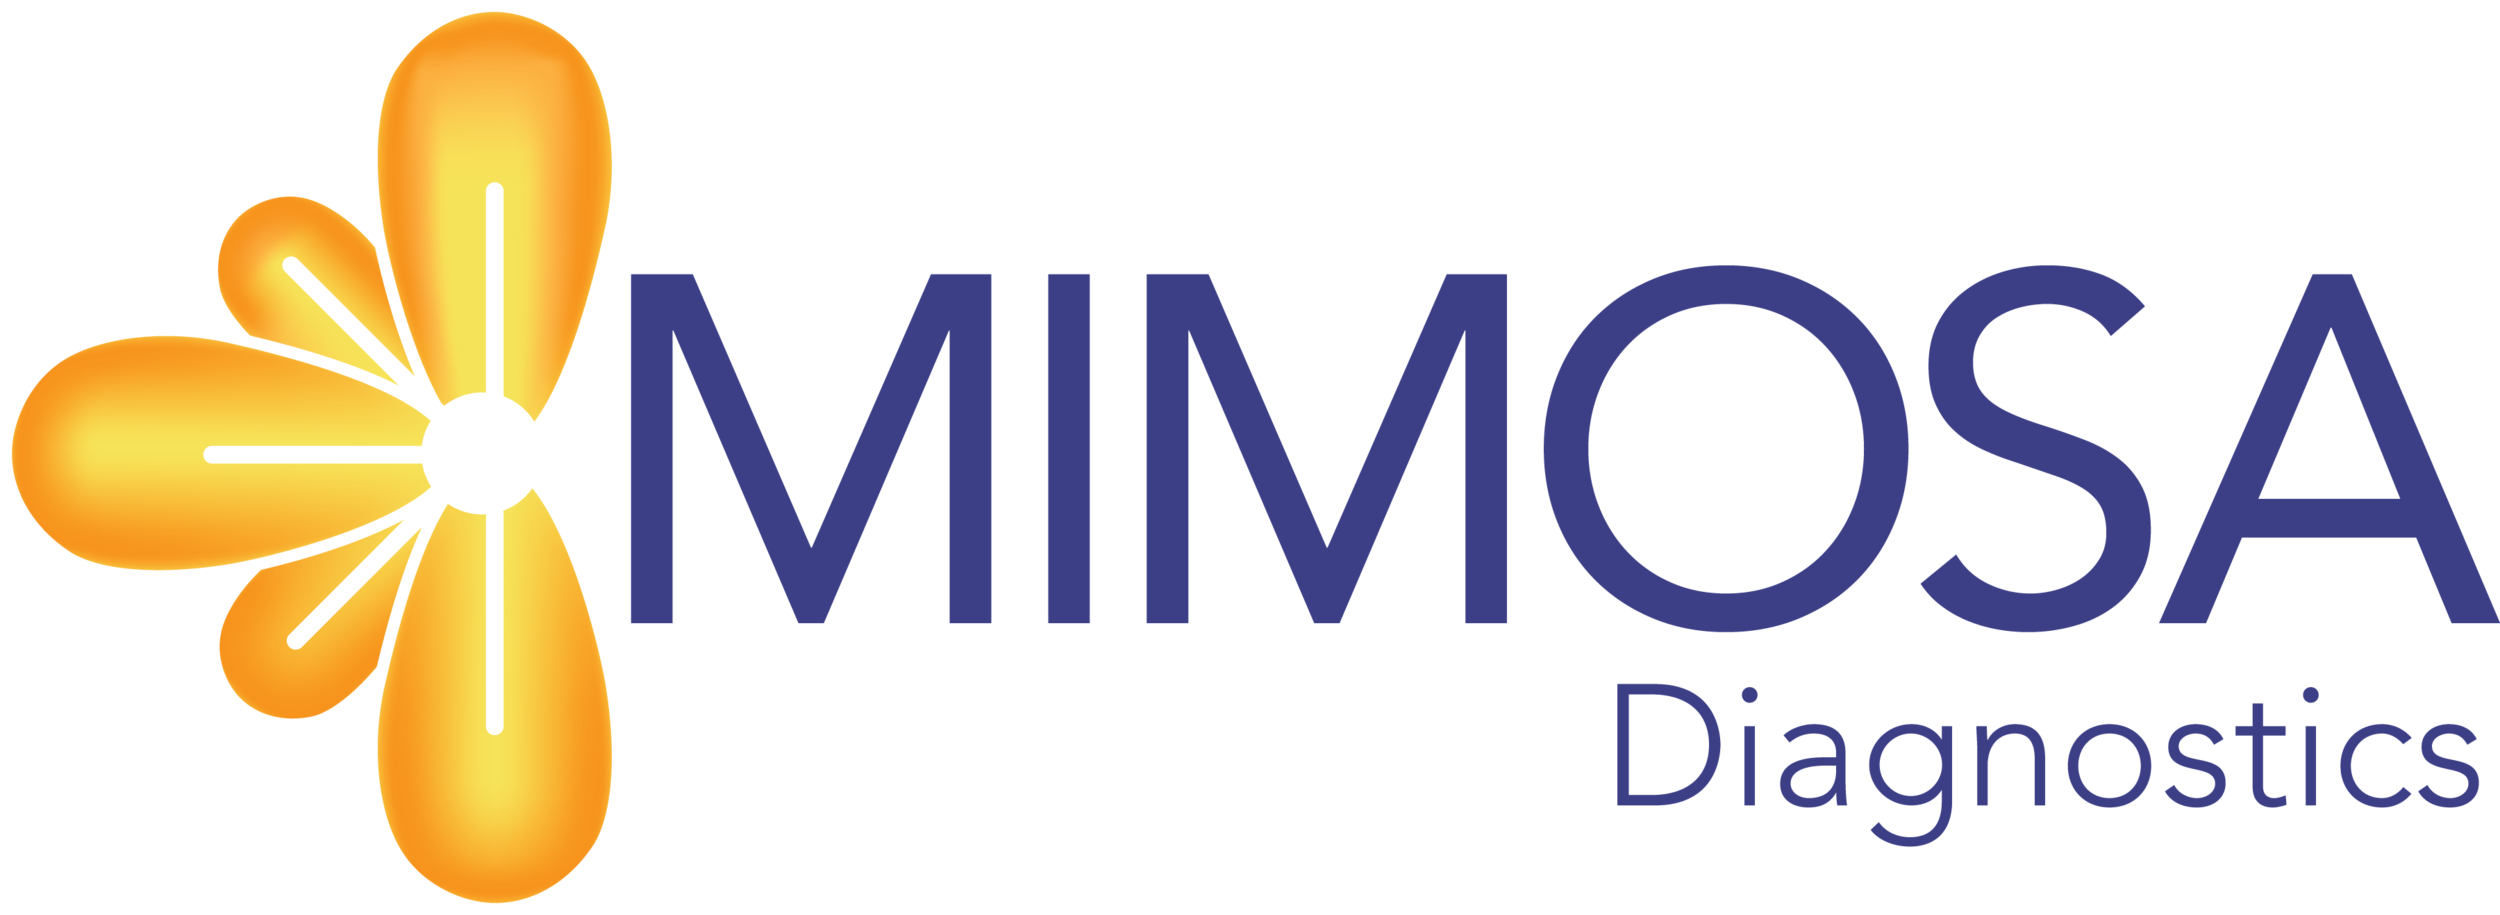 MIMOSA Diagnostics logo FINAL.png